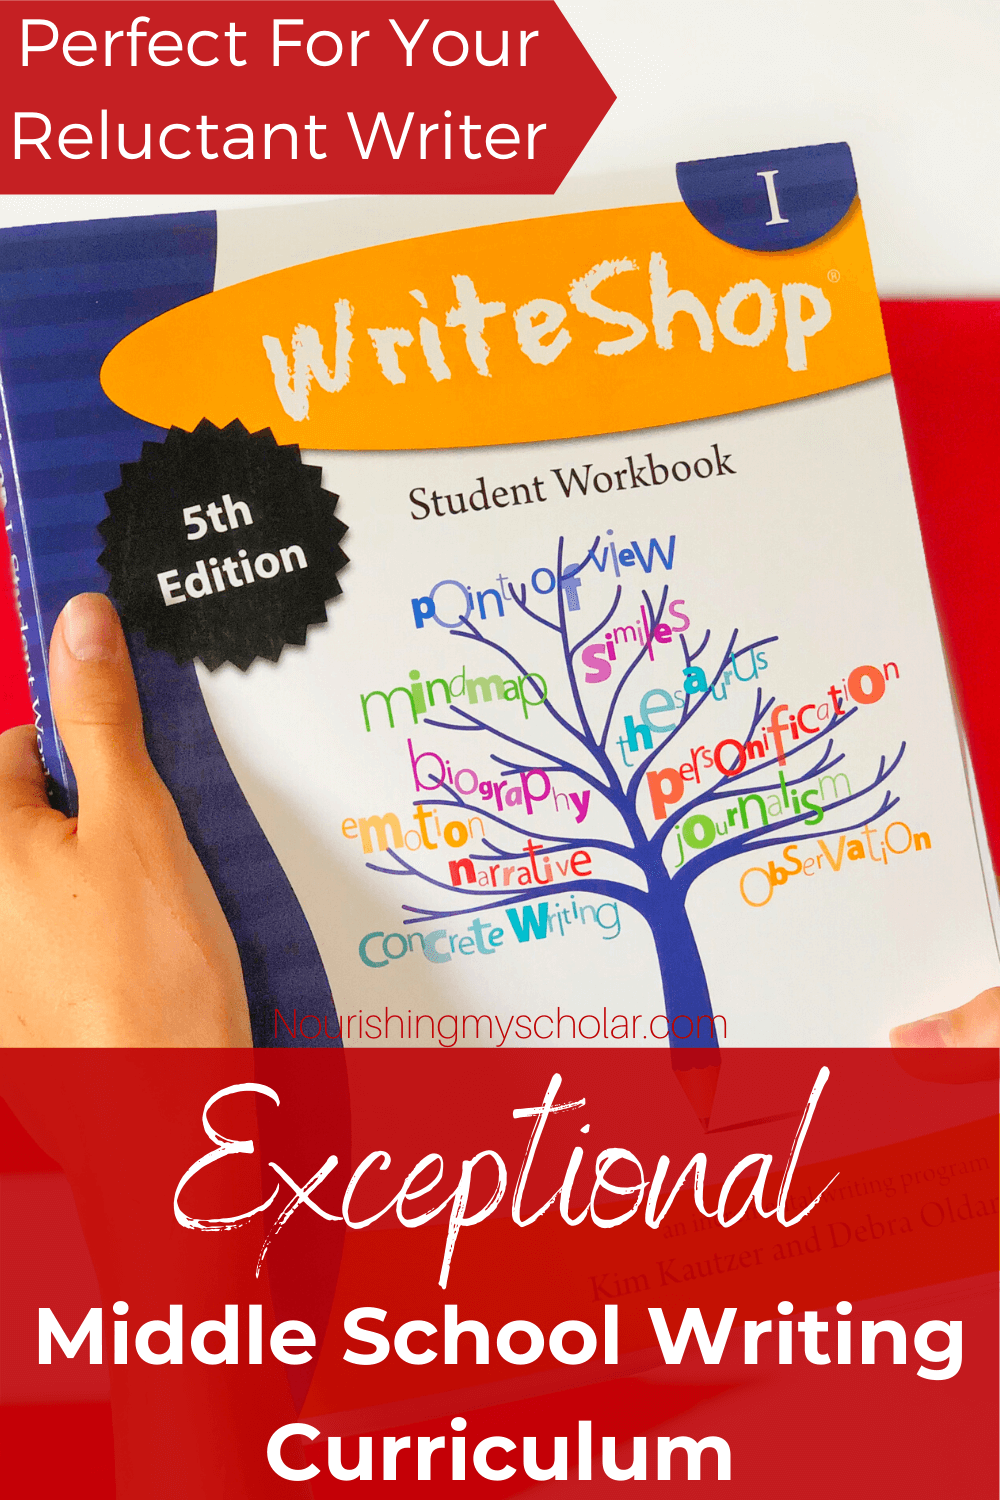 Exceptional Middle School Writing Curriculum: Are you looking for a middle school writing curriculum? Do you need something flexible, and gentle, yet thorough? Perhaps you have a reluctant writer or a young writer that has trouble putting their thoughts on paper. WriteShop takes the overwhelm out of the writing process. #homeschool #writingcurriculum #middleschoolwritingcurriculum #WriteShop #WriteShopI #reluctantwritercurriculum #gentlewritingcurriculum #onlinewritingcurriculum